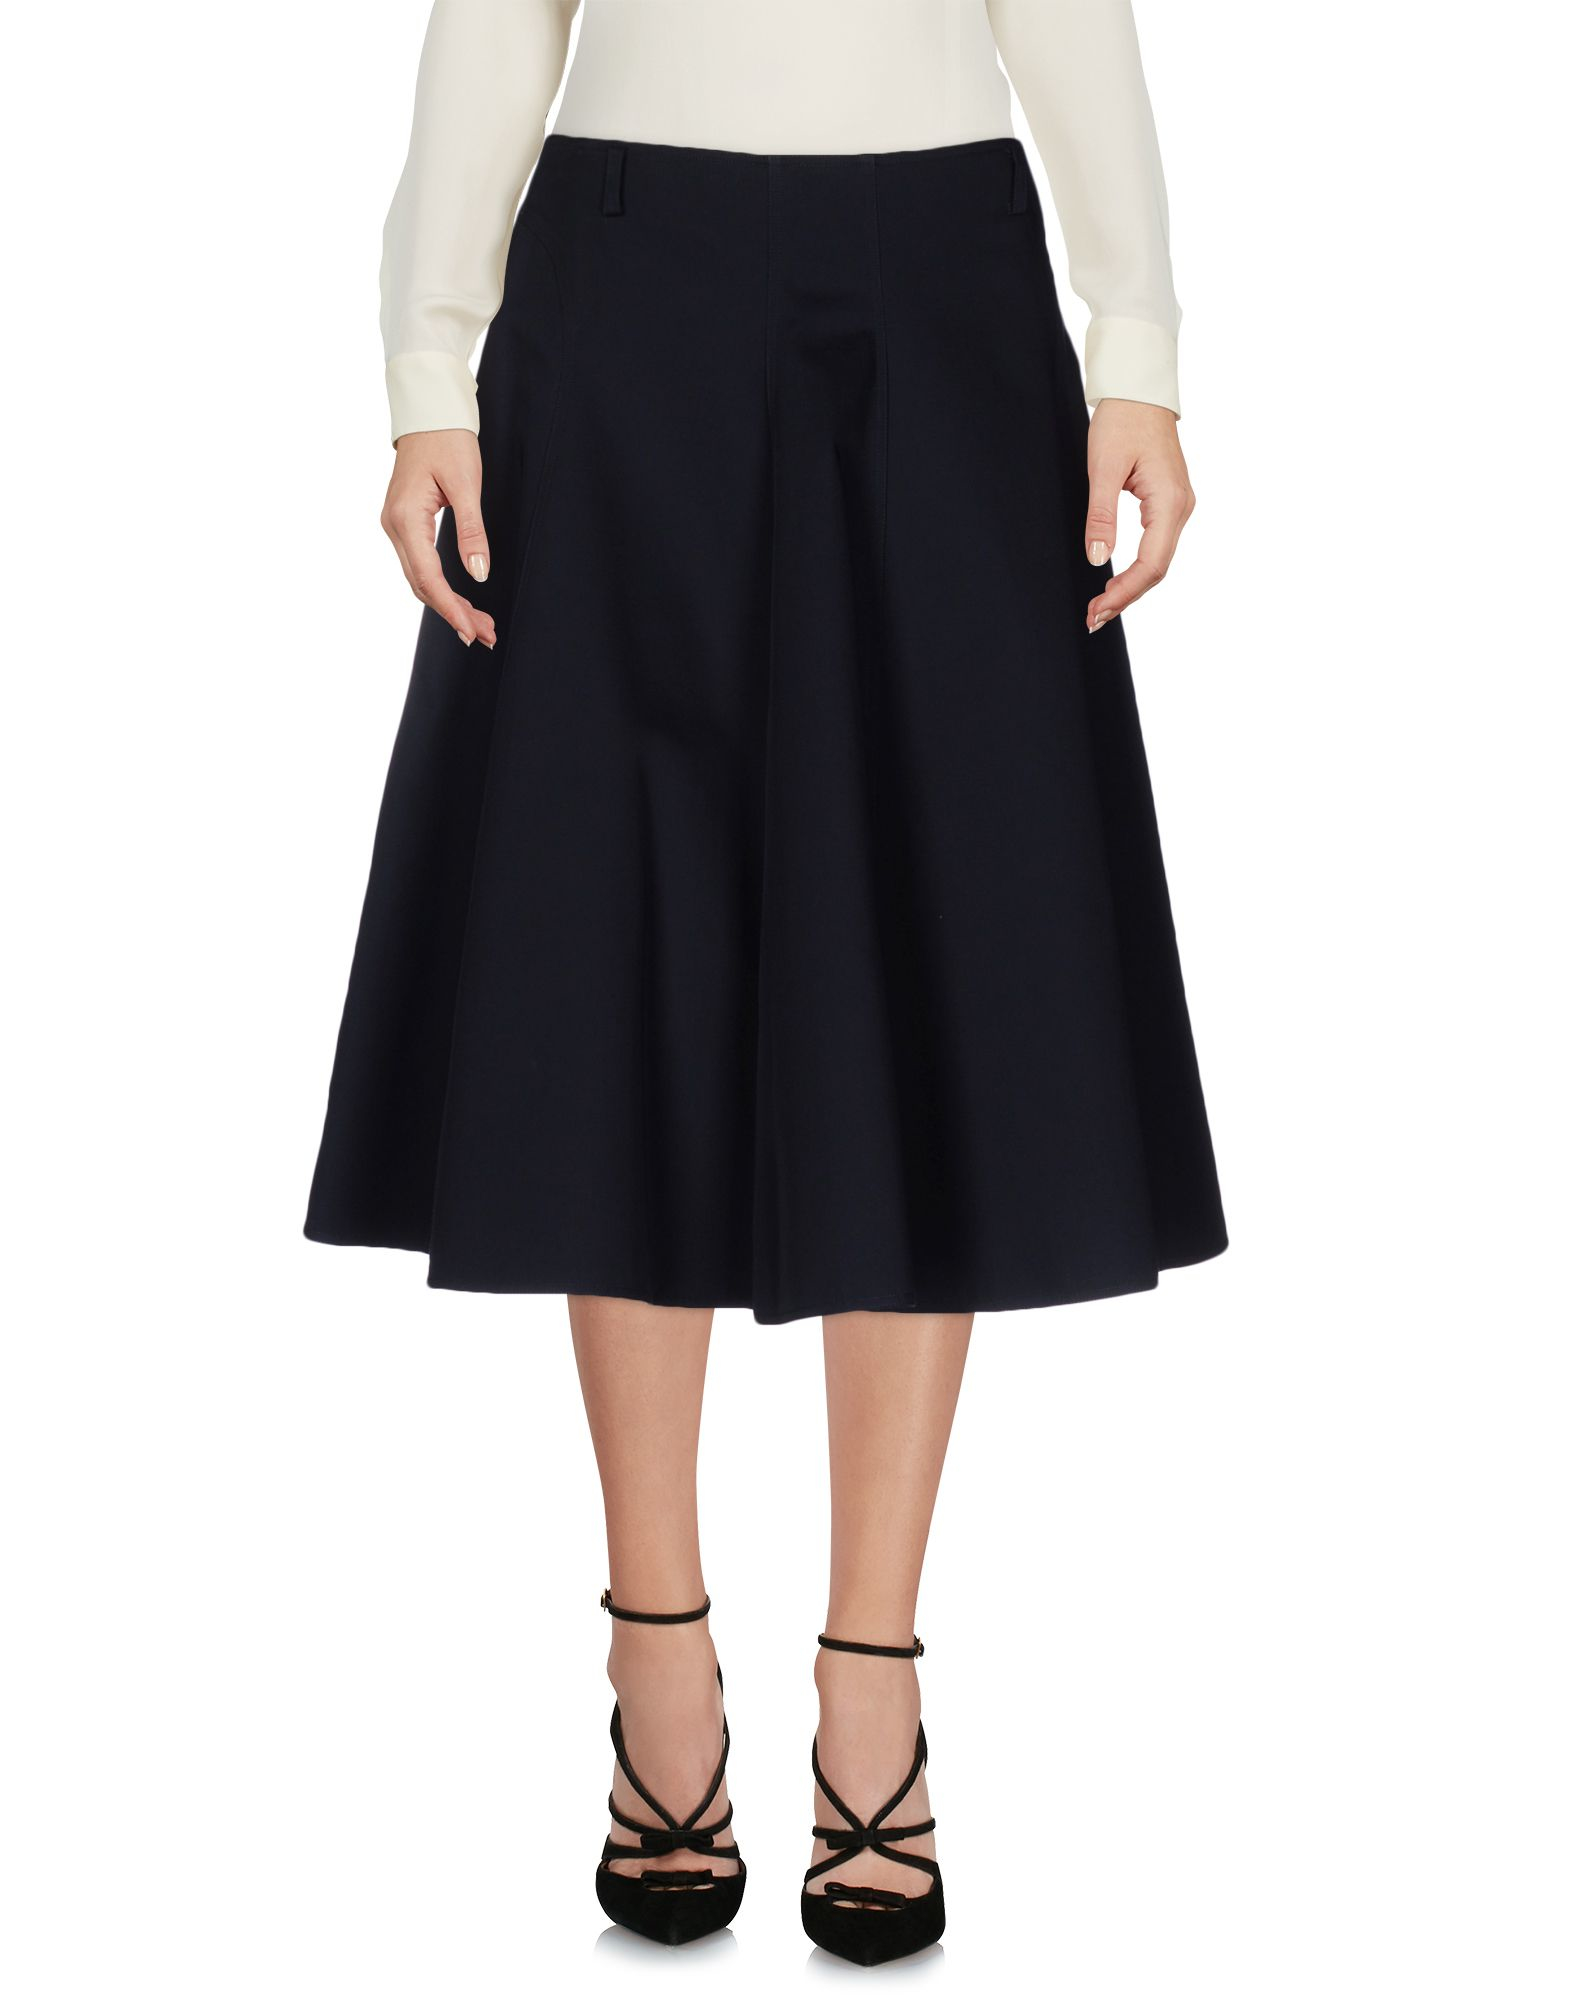 Sofie d 39 hoore 3 4 length skirt in black lyst for 20 34 35 dress shirts